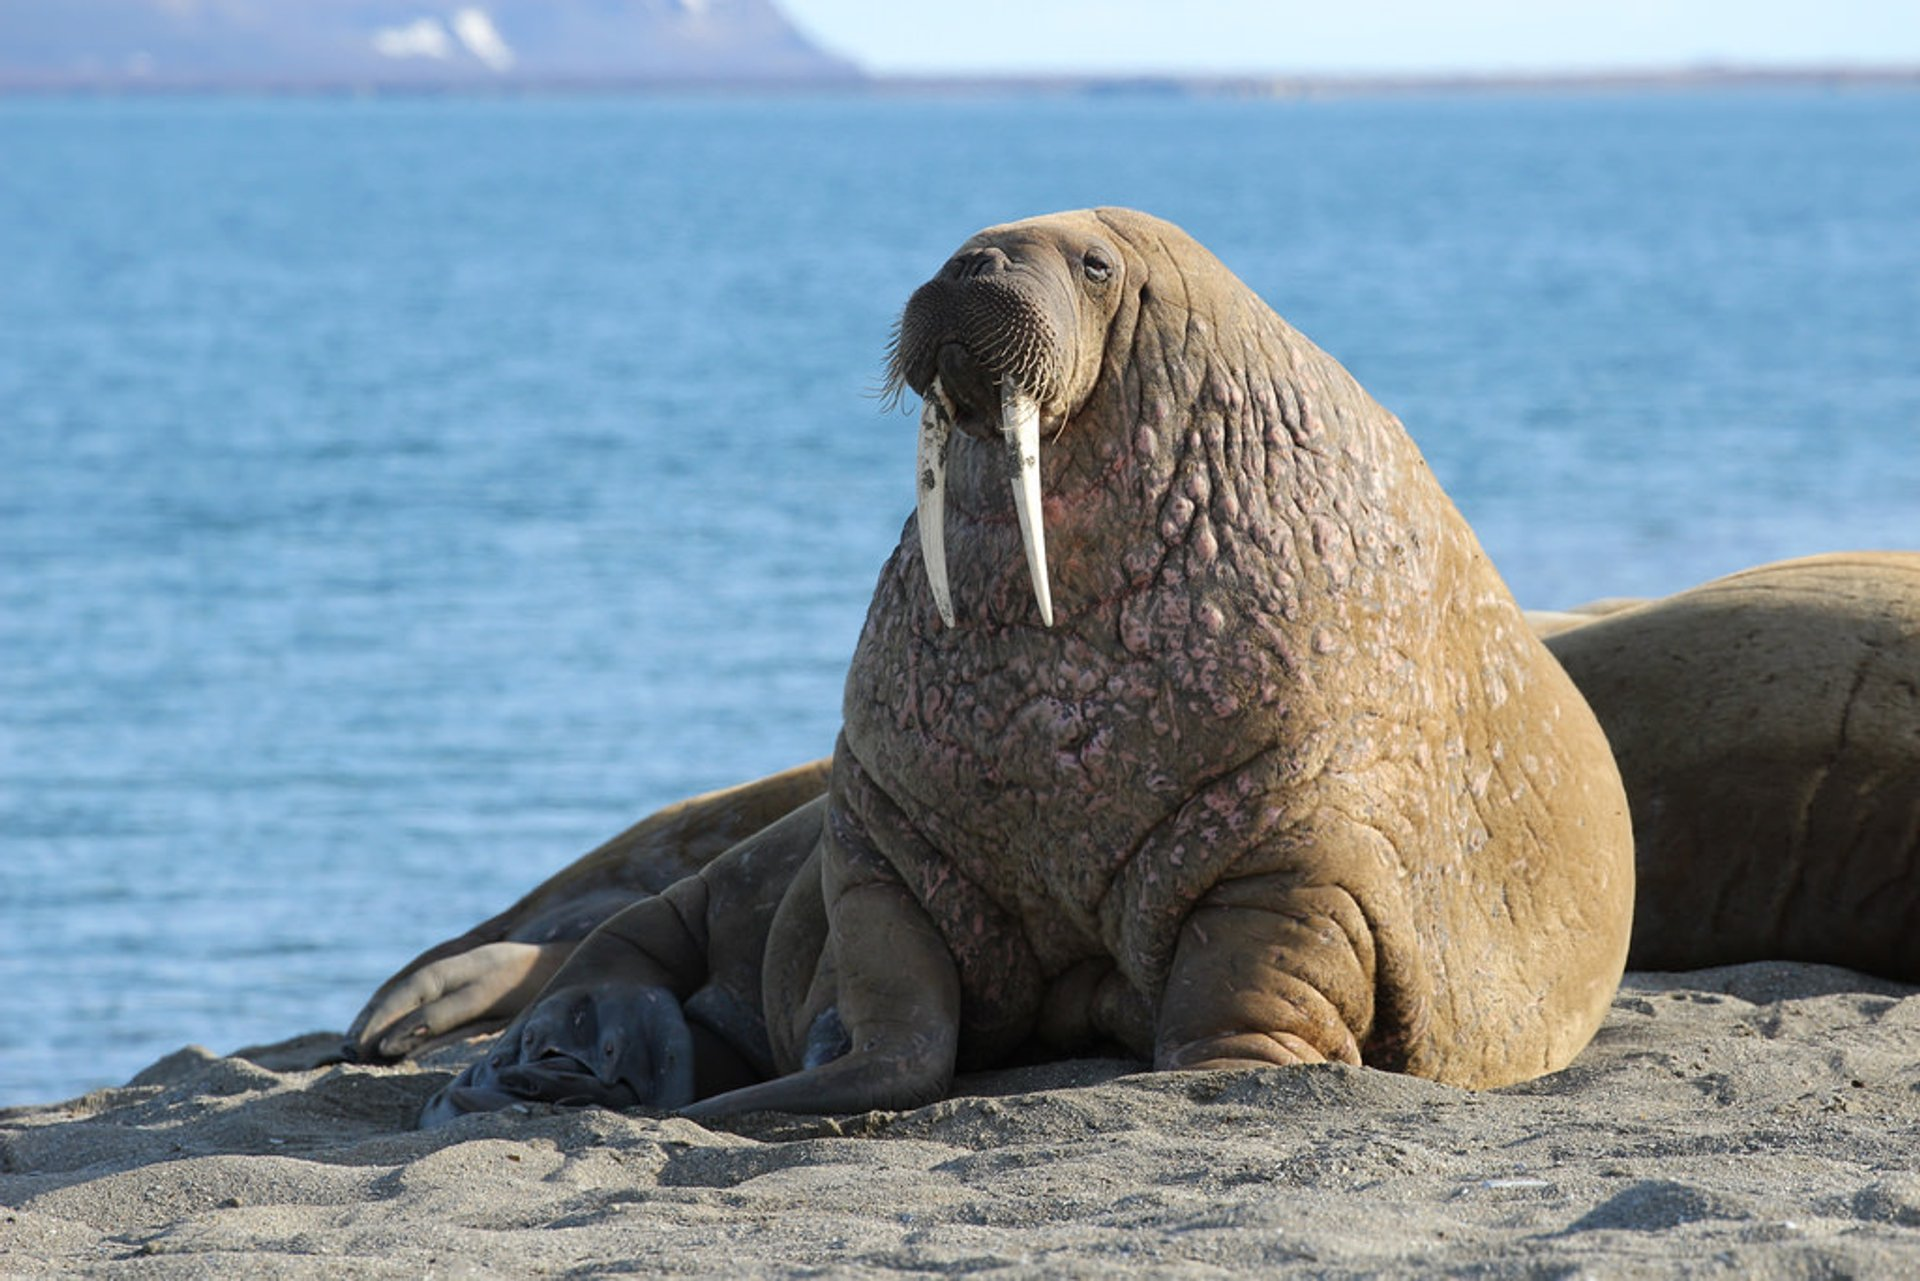 Walrus in Norway 2019 - Best Time